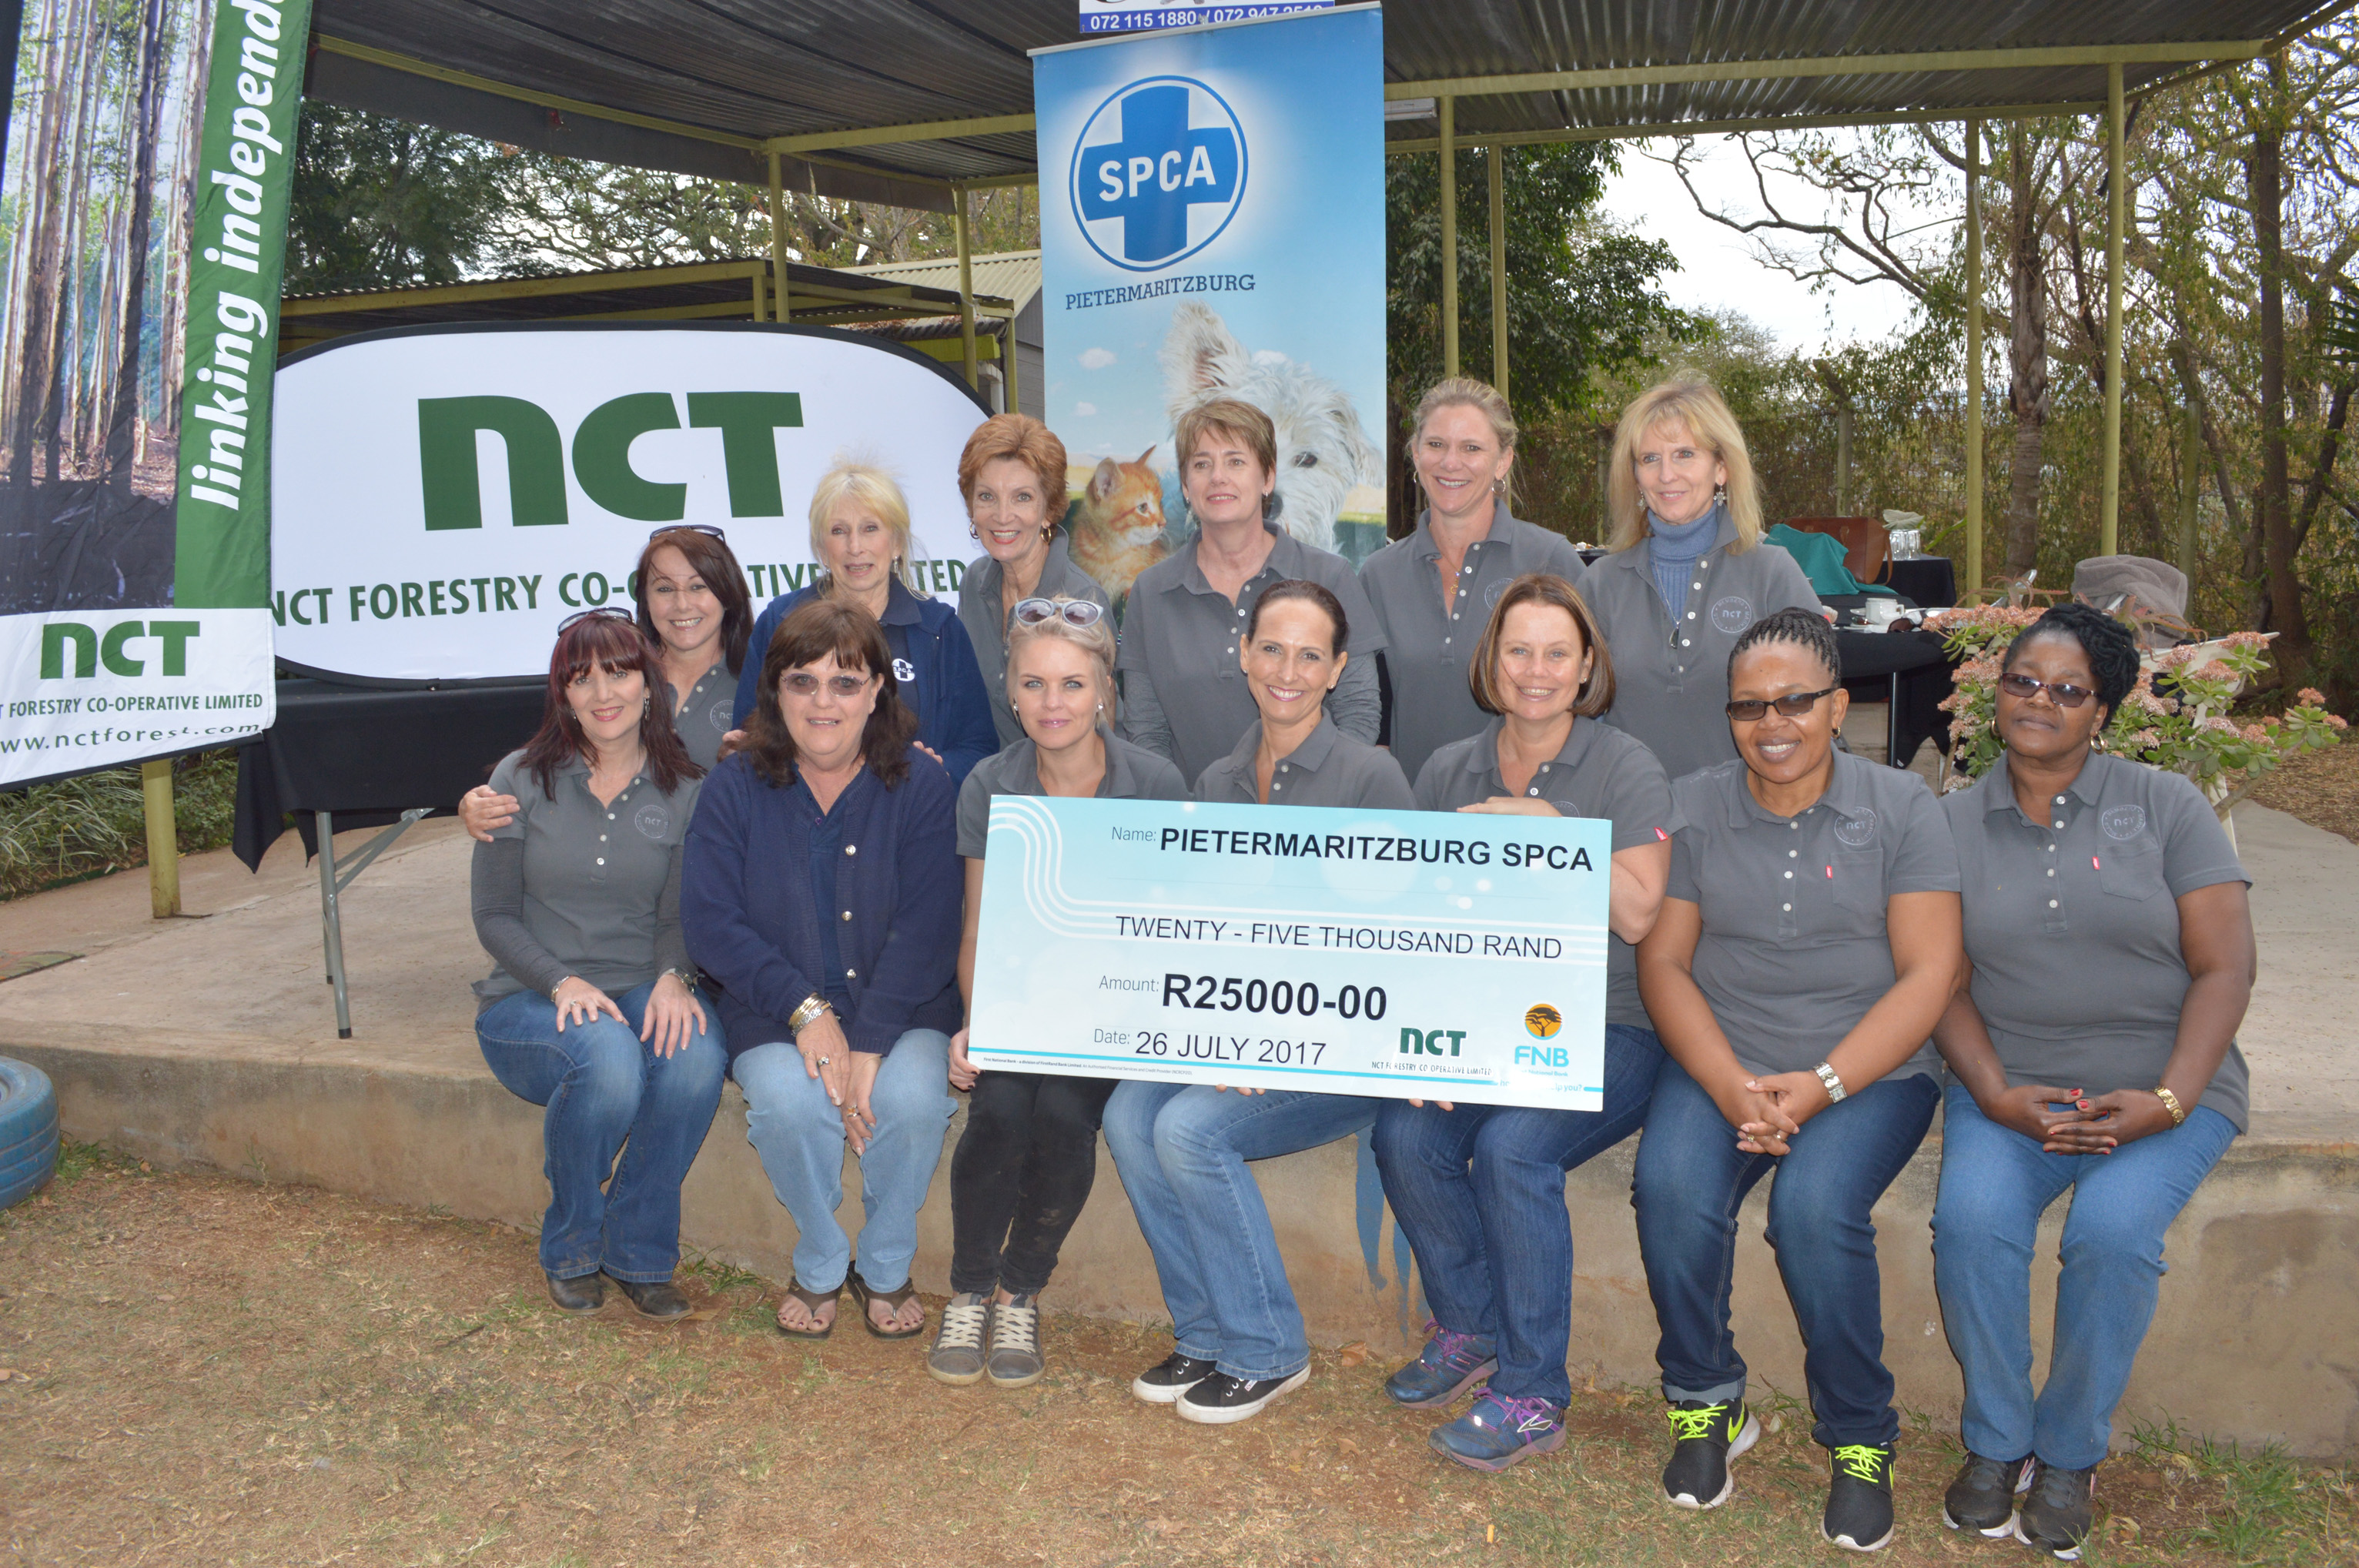 NCT Forestry Co-operative Limited